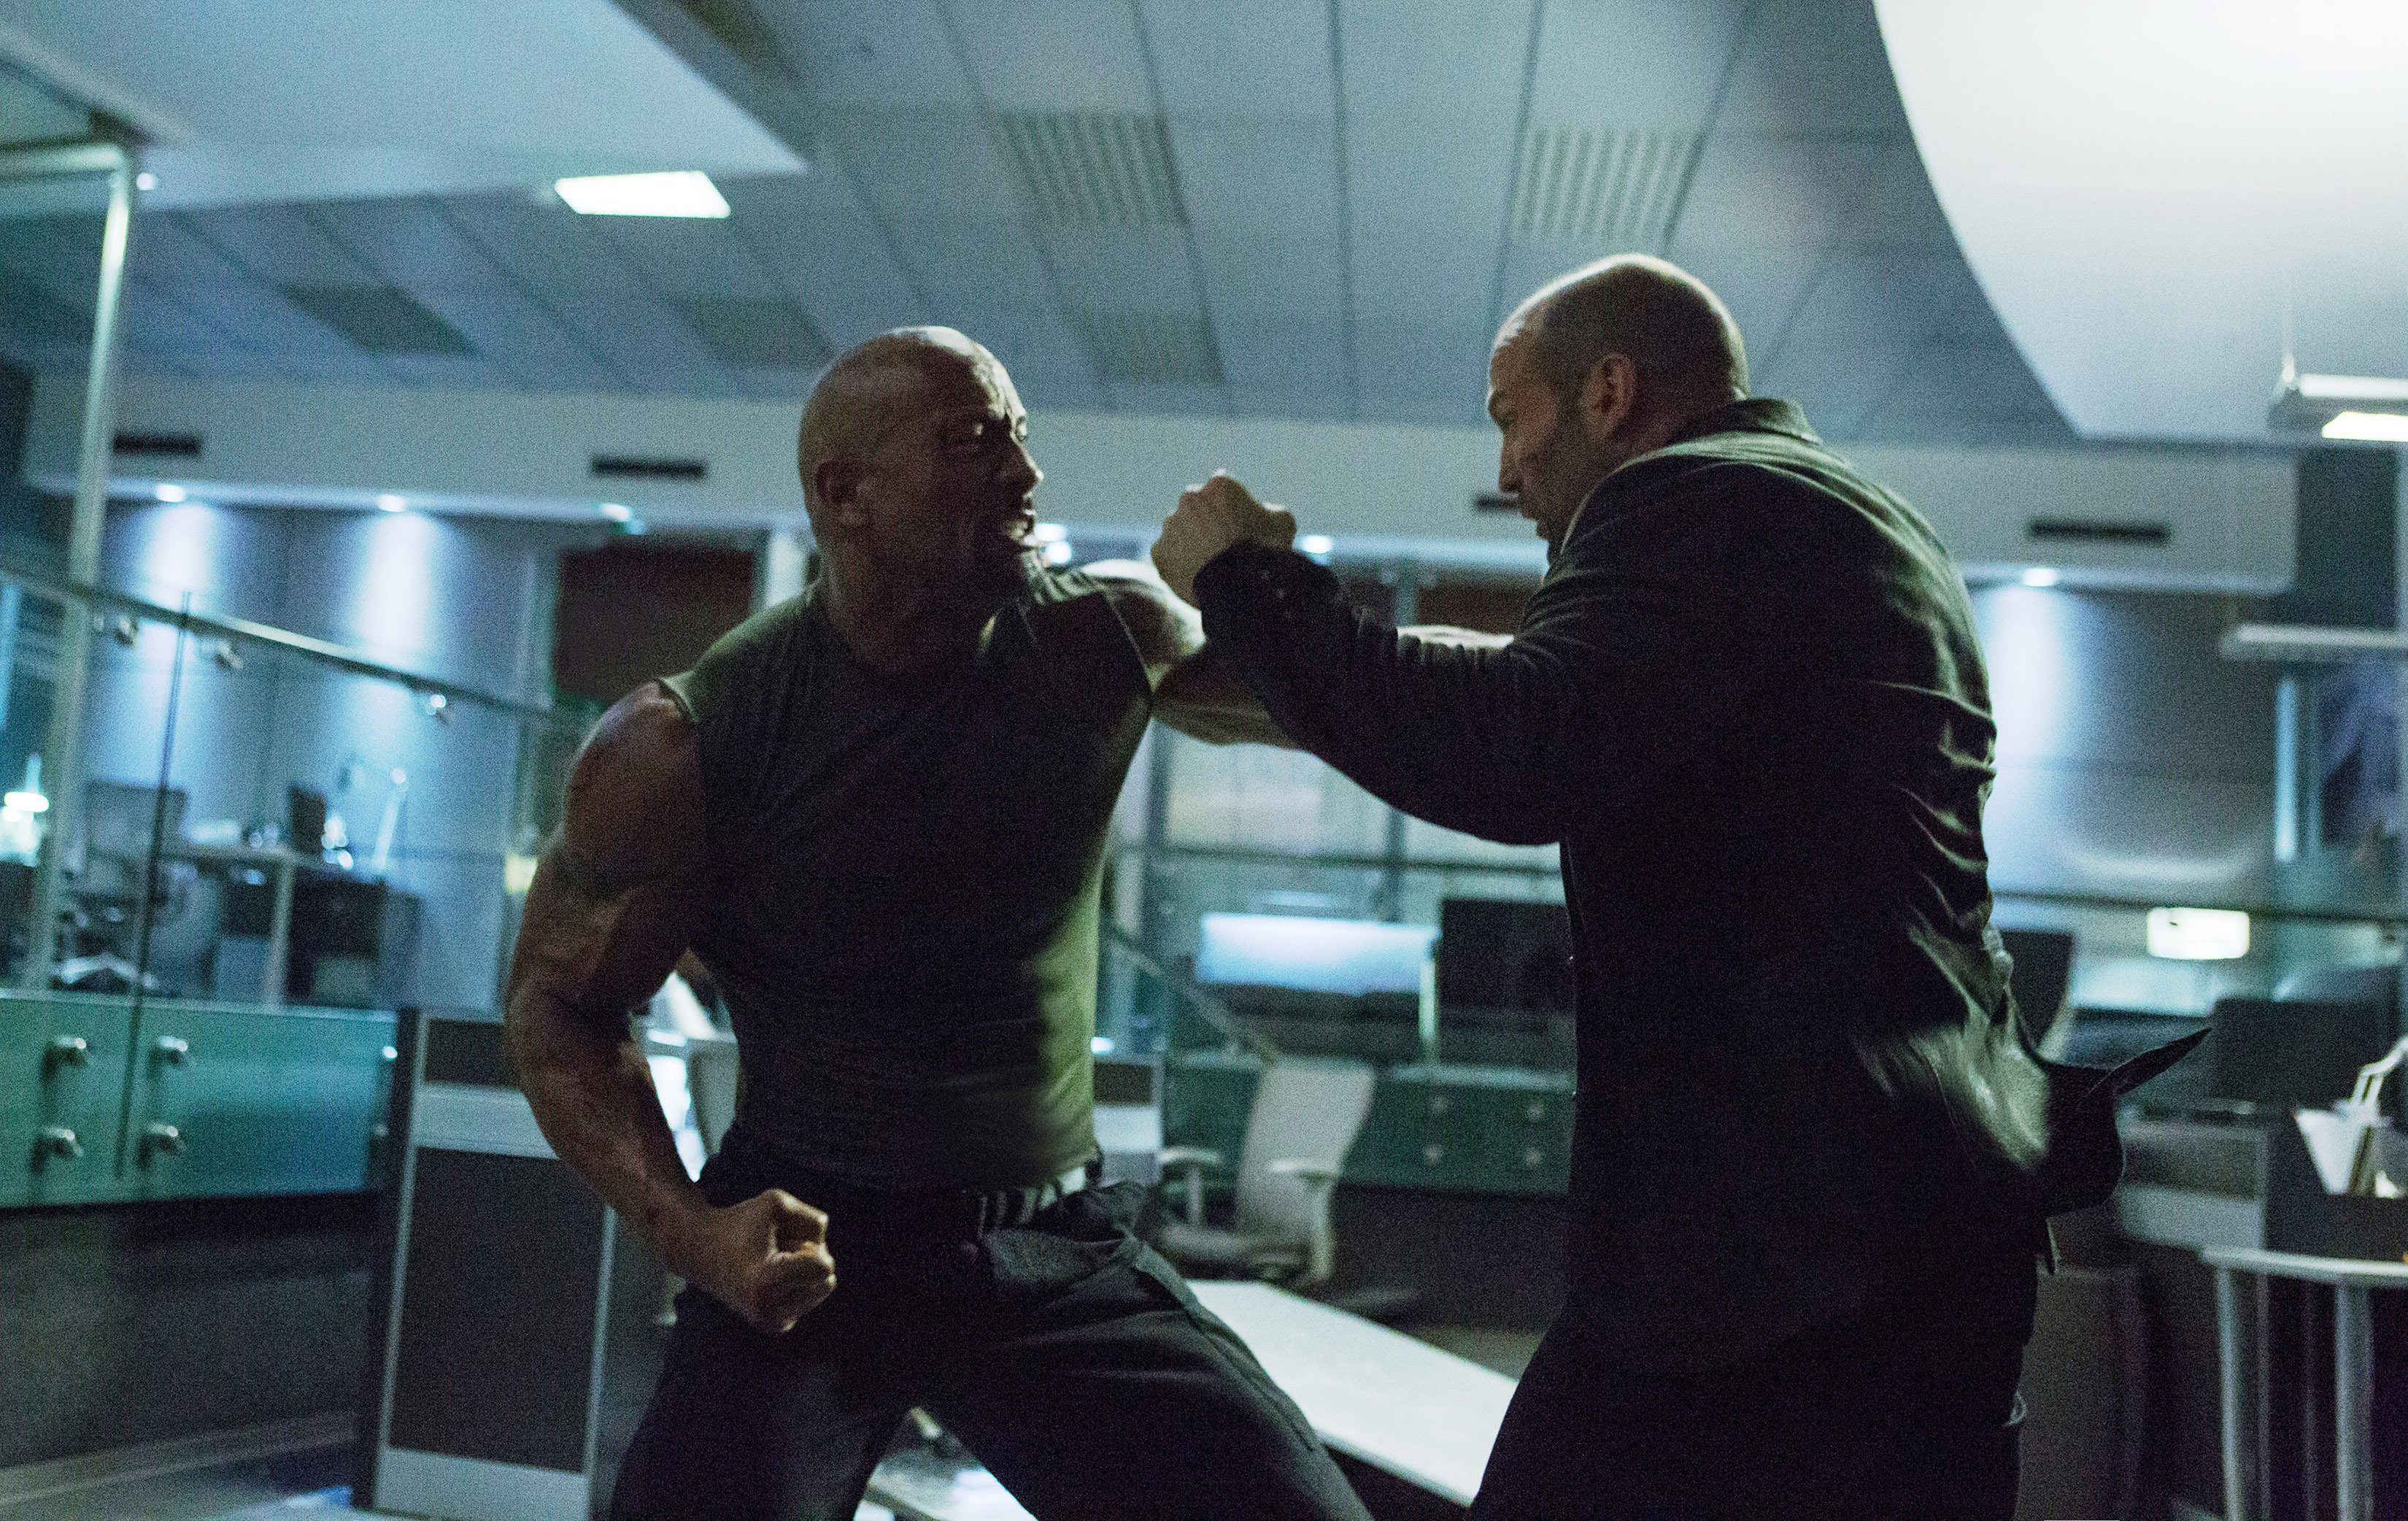 Dwayne 'The Rock' Johnson Shares First Image From 'Fast & Furious' Spinoff